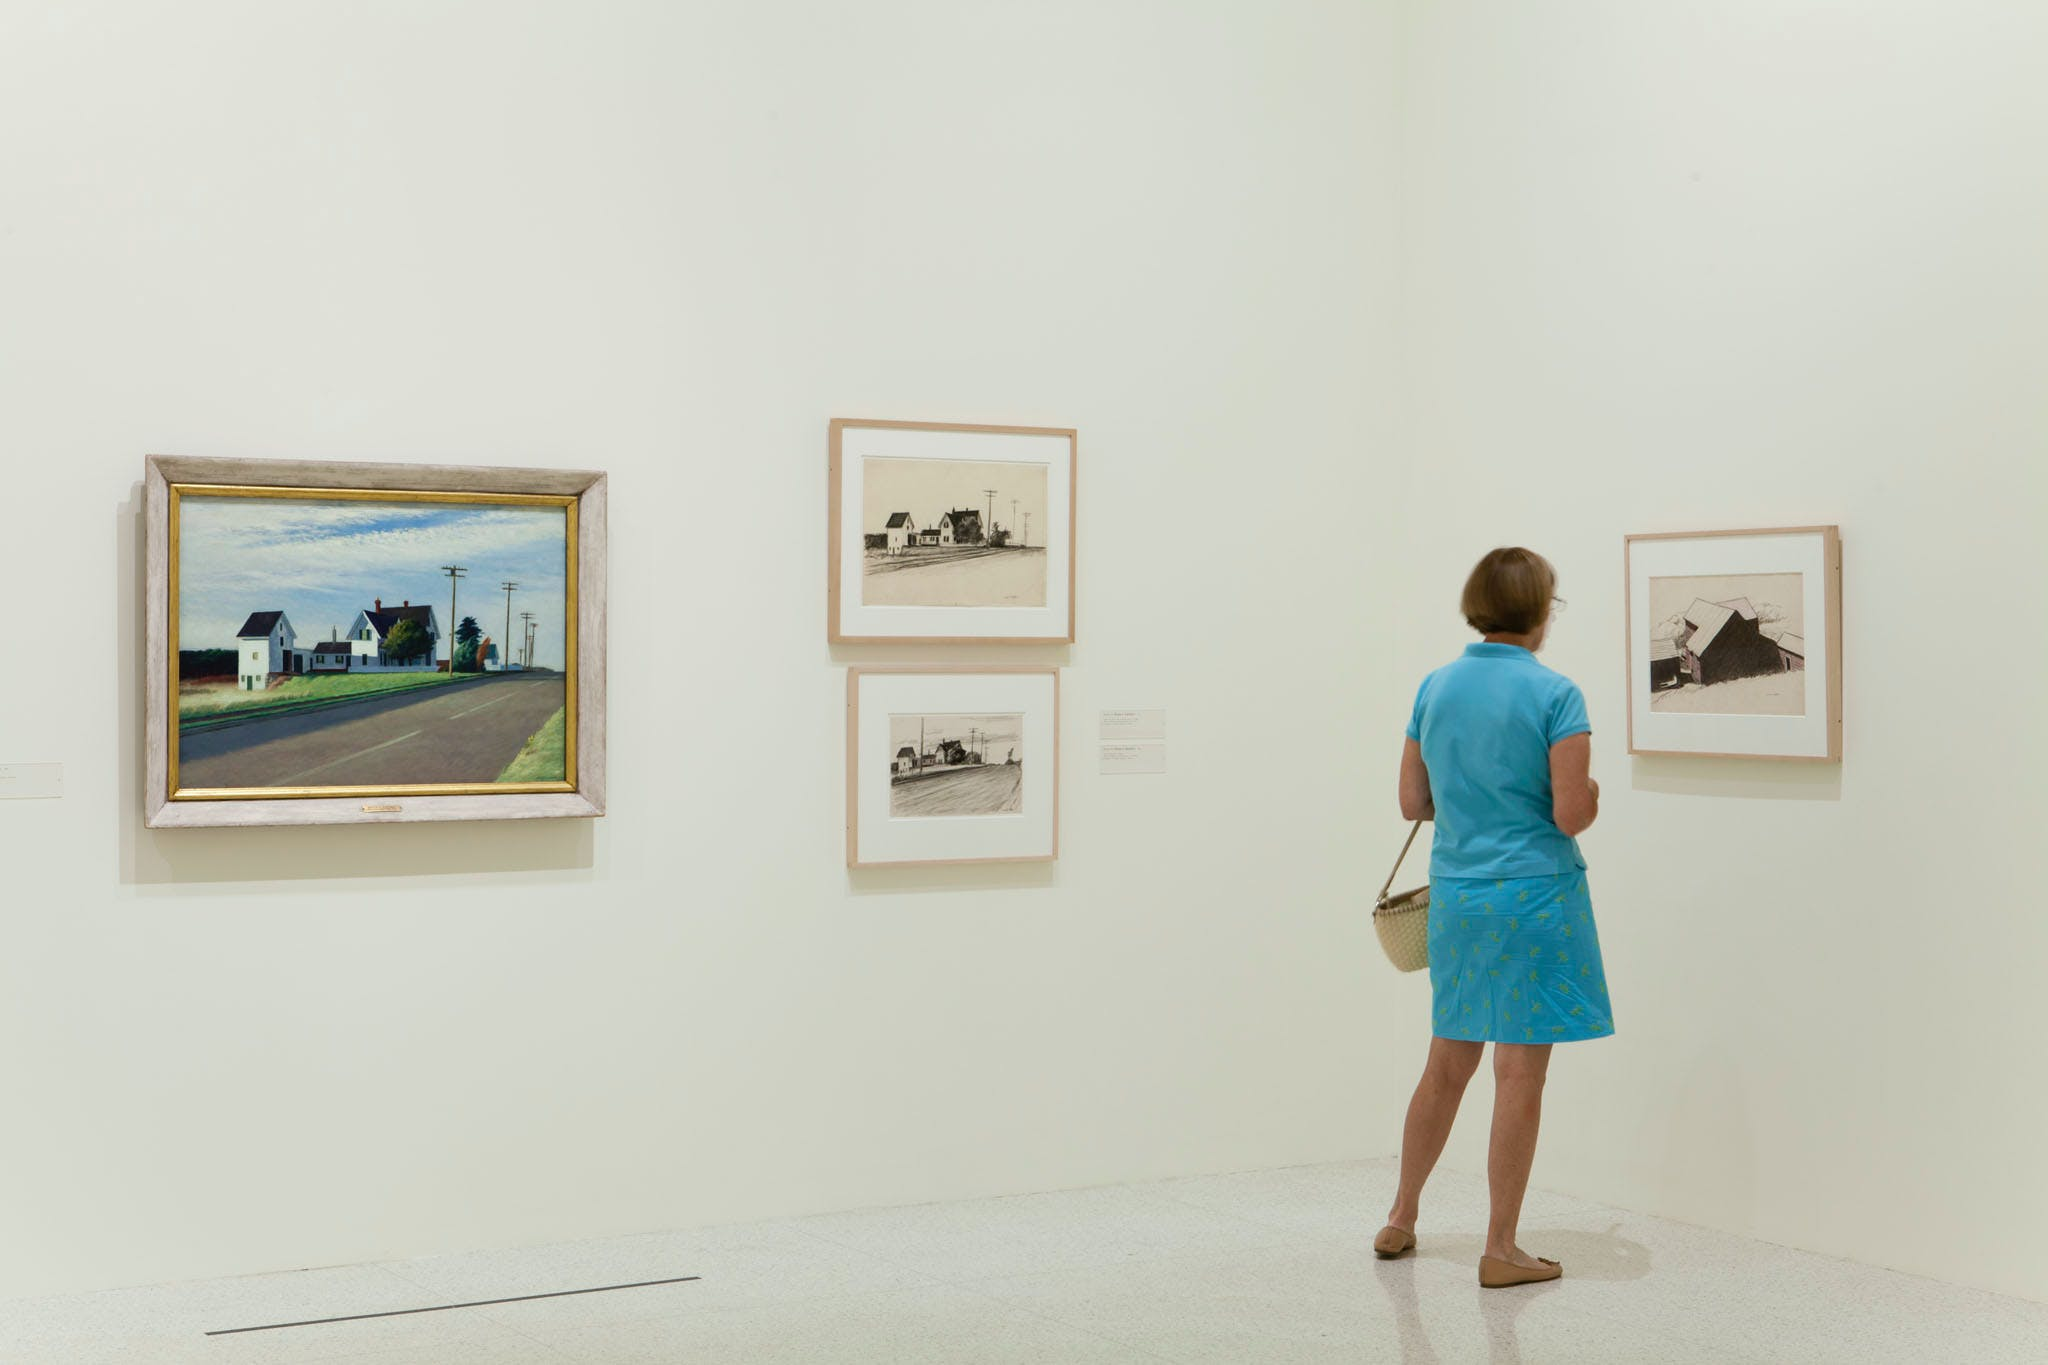 View of the exhibition Hopper Drawing: A Painter's Process, 2014